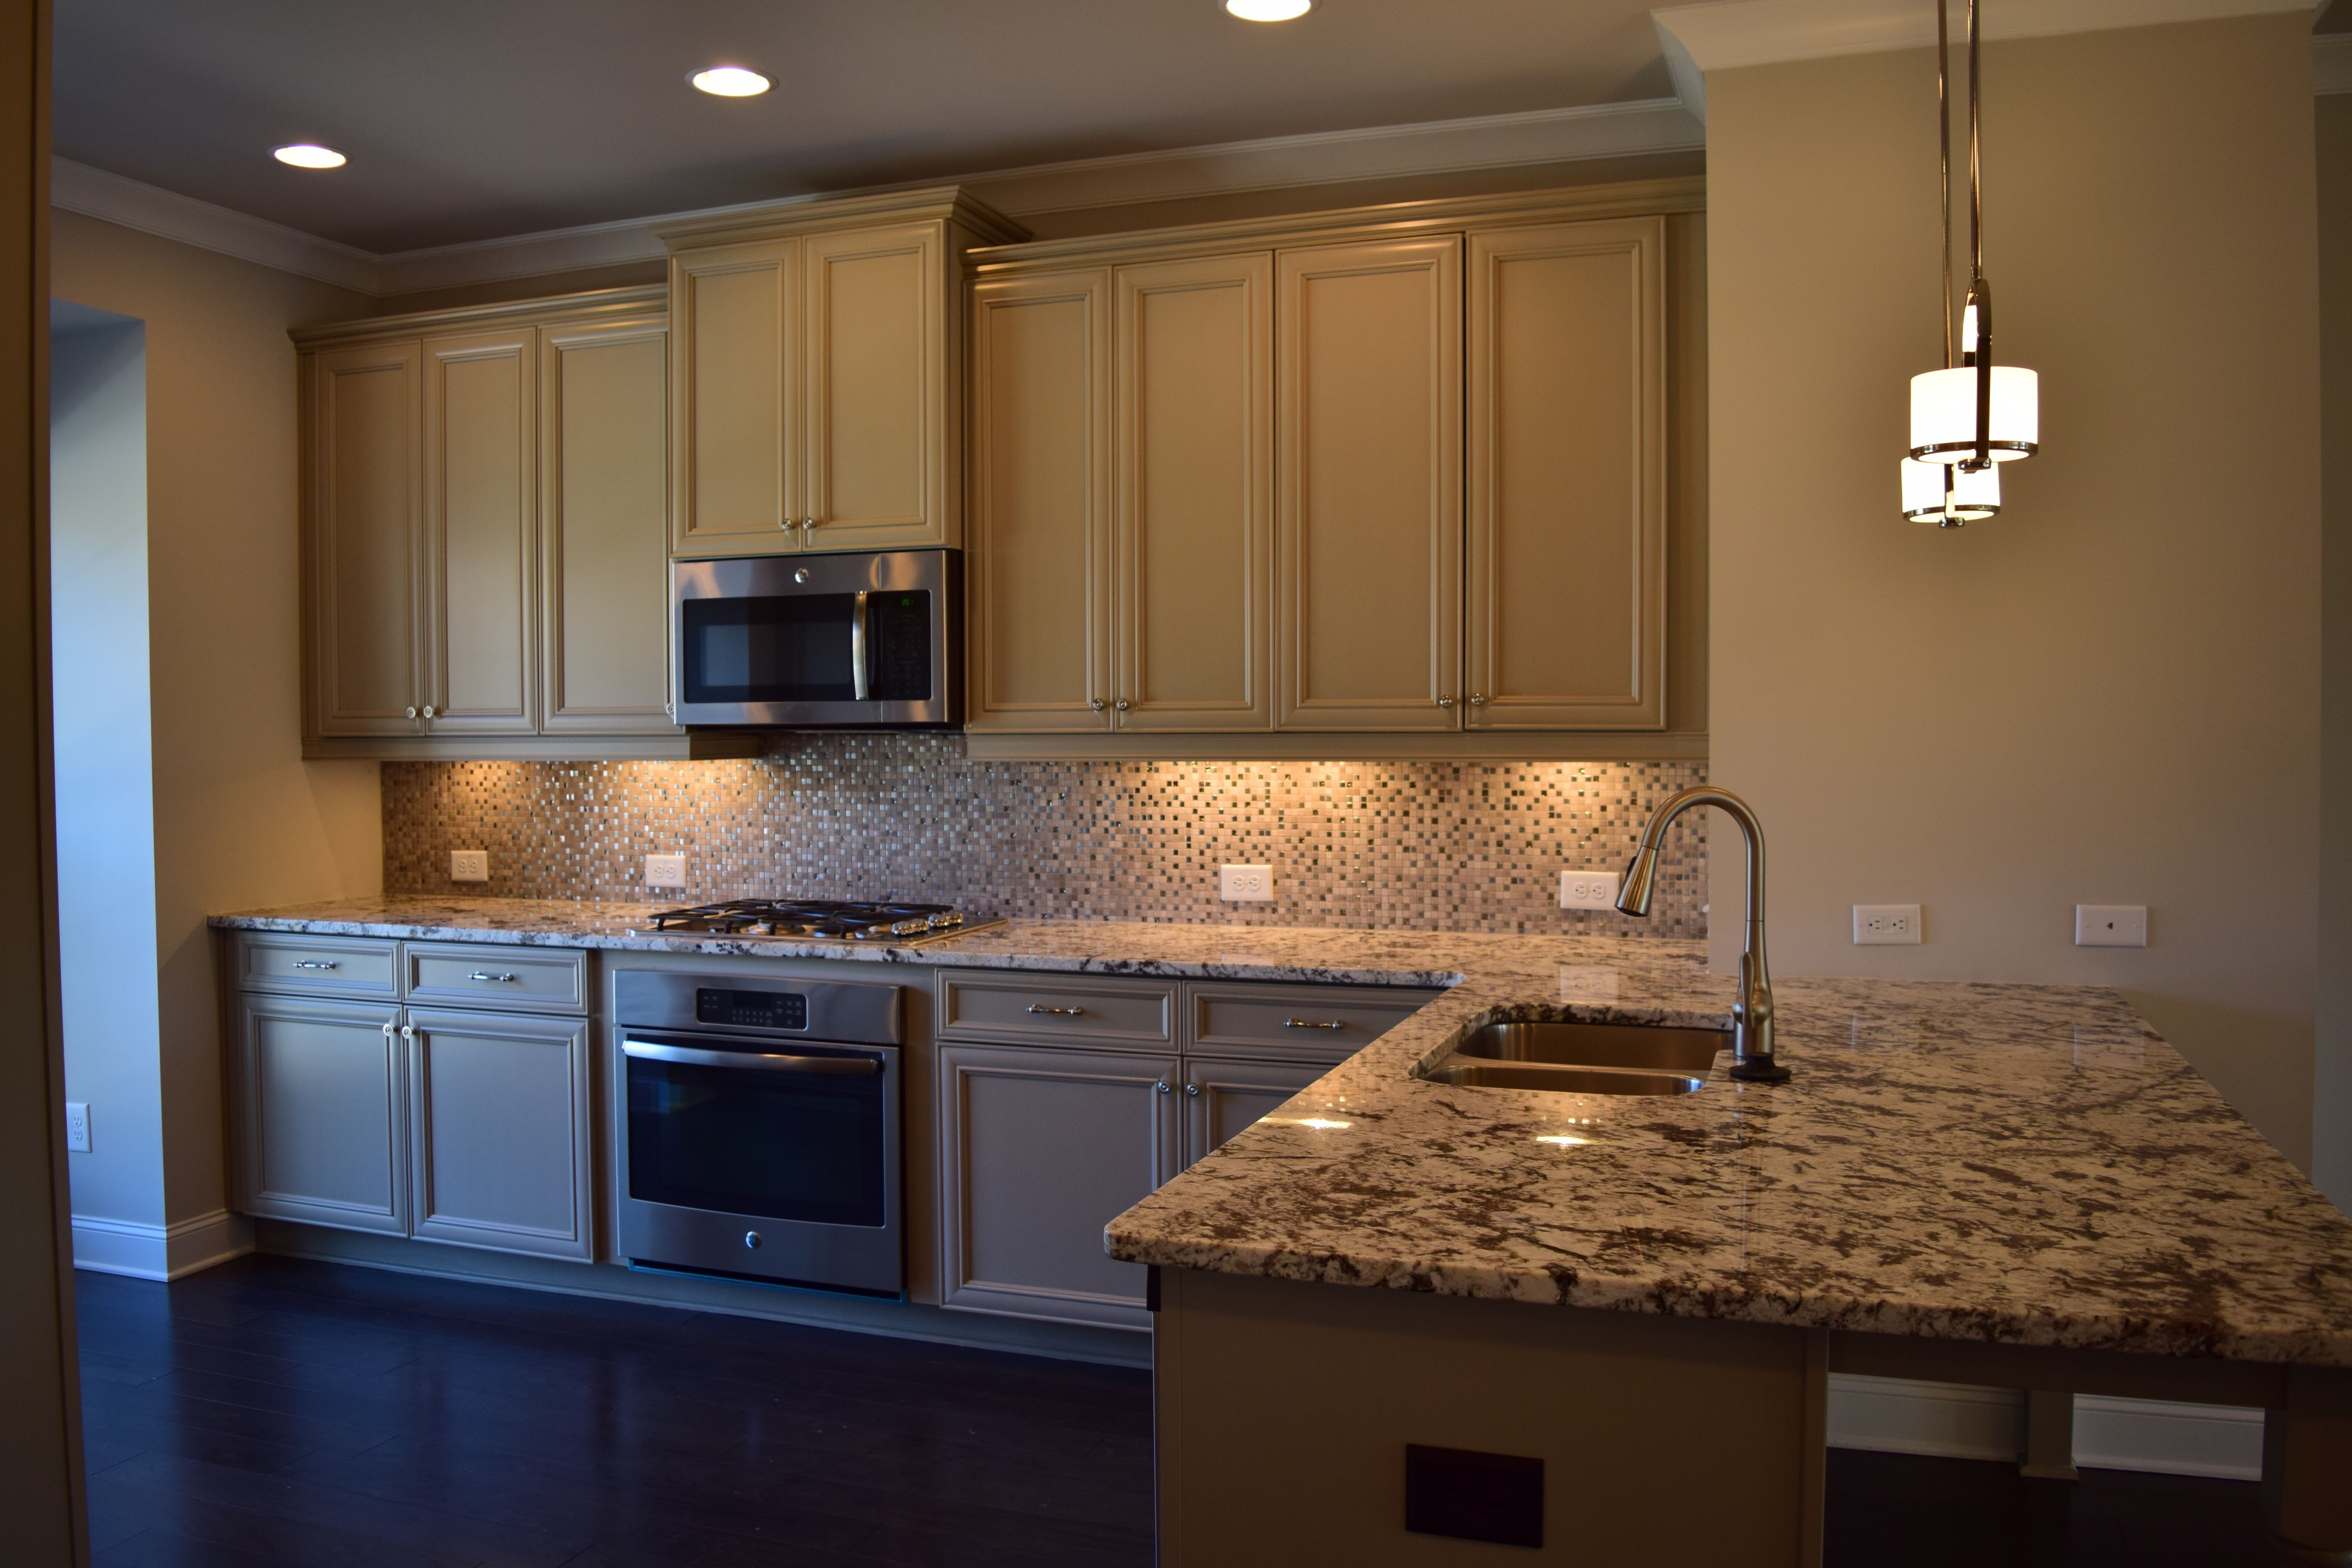 This Freemont kitchen showcases granite counters in White Orion and